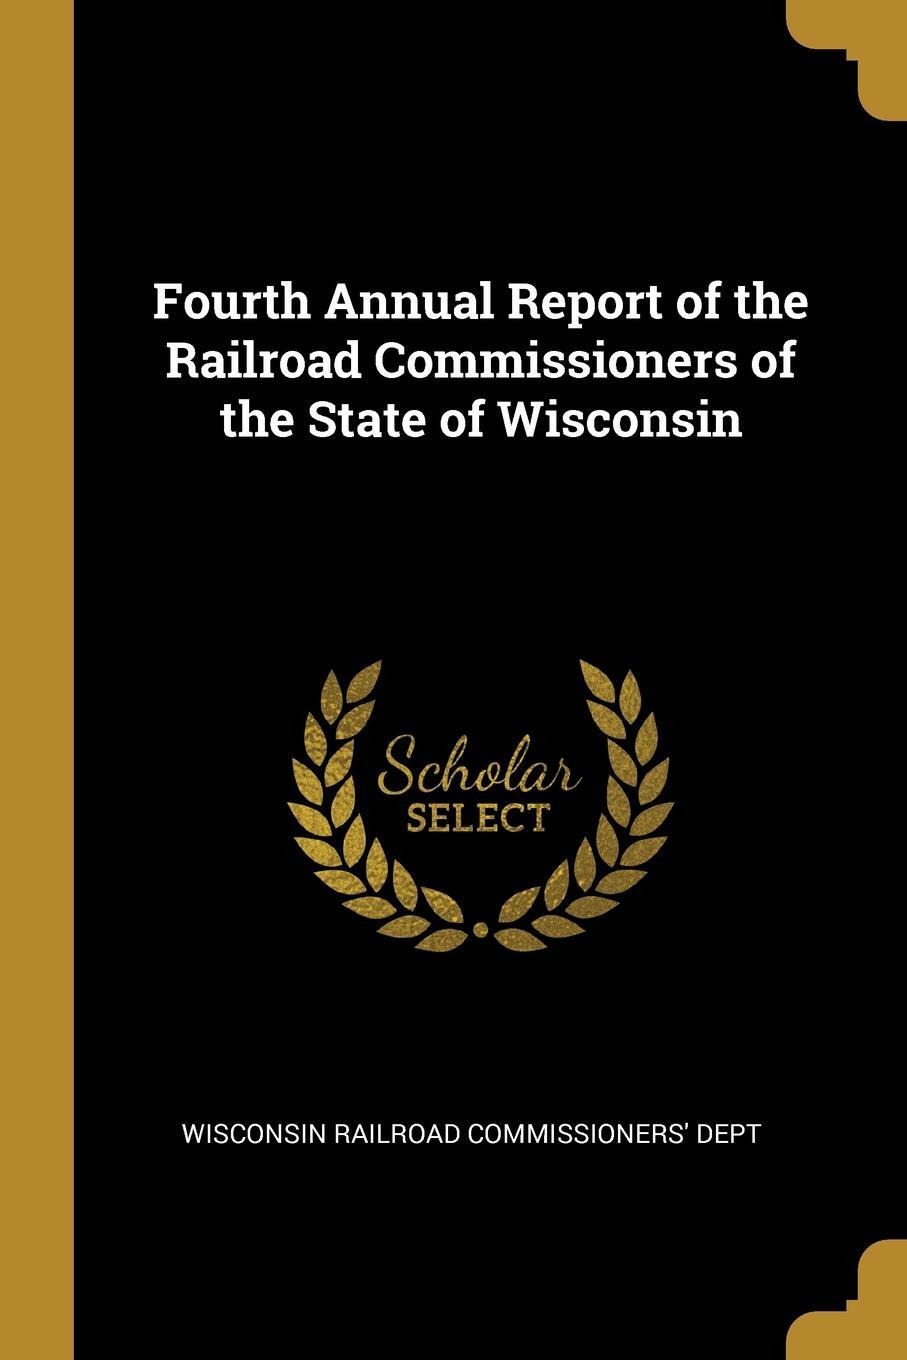 Fourth Annual Report of the Railroad Commissioners of the State of Wisconsin. Wisconsin Railroad Commissioners` Dept